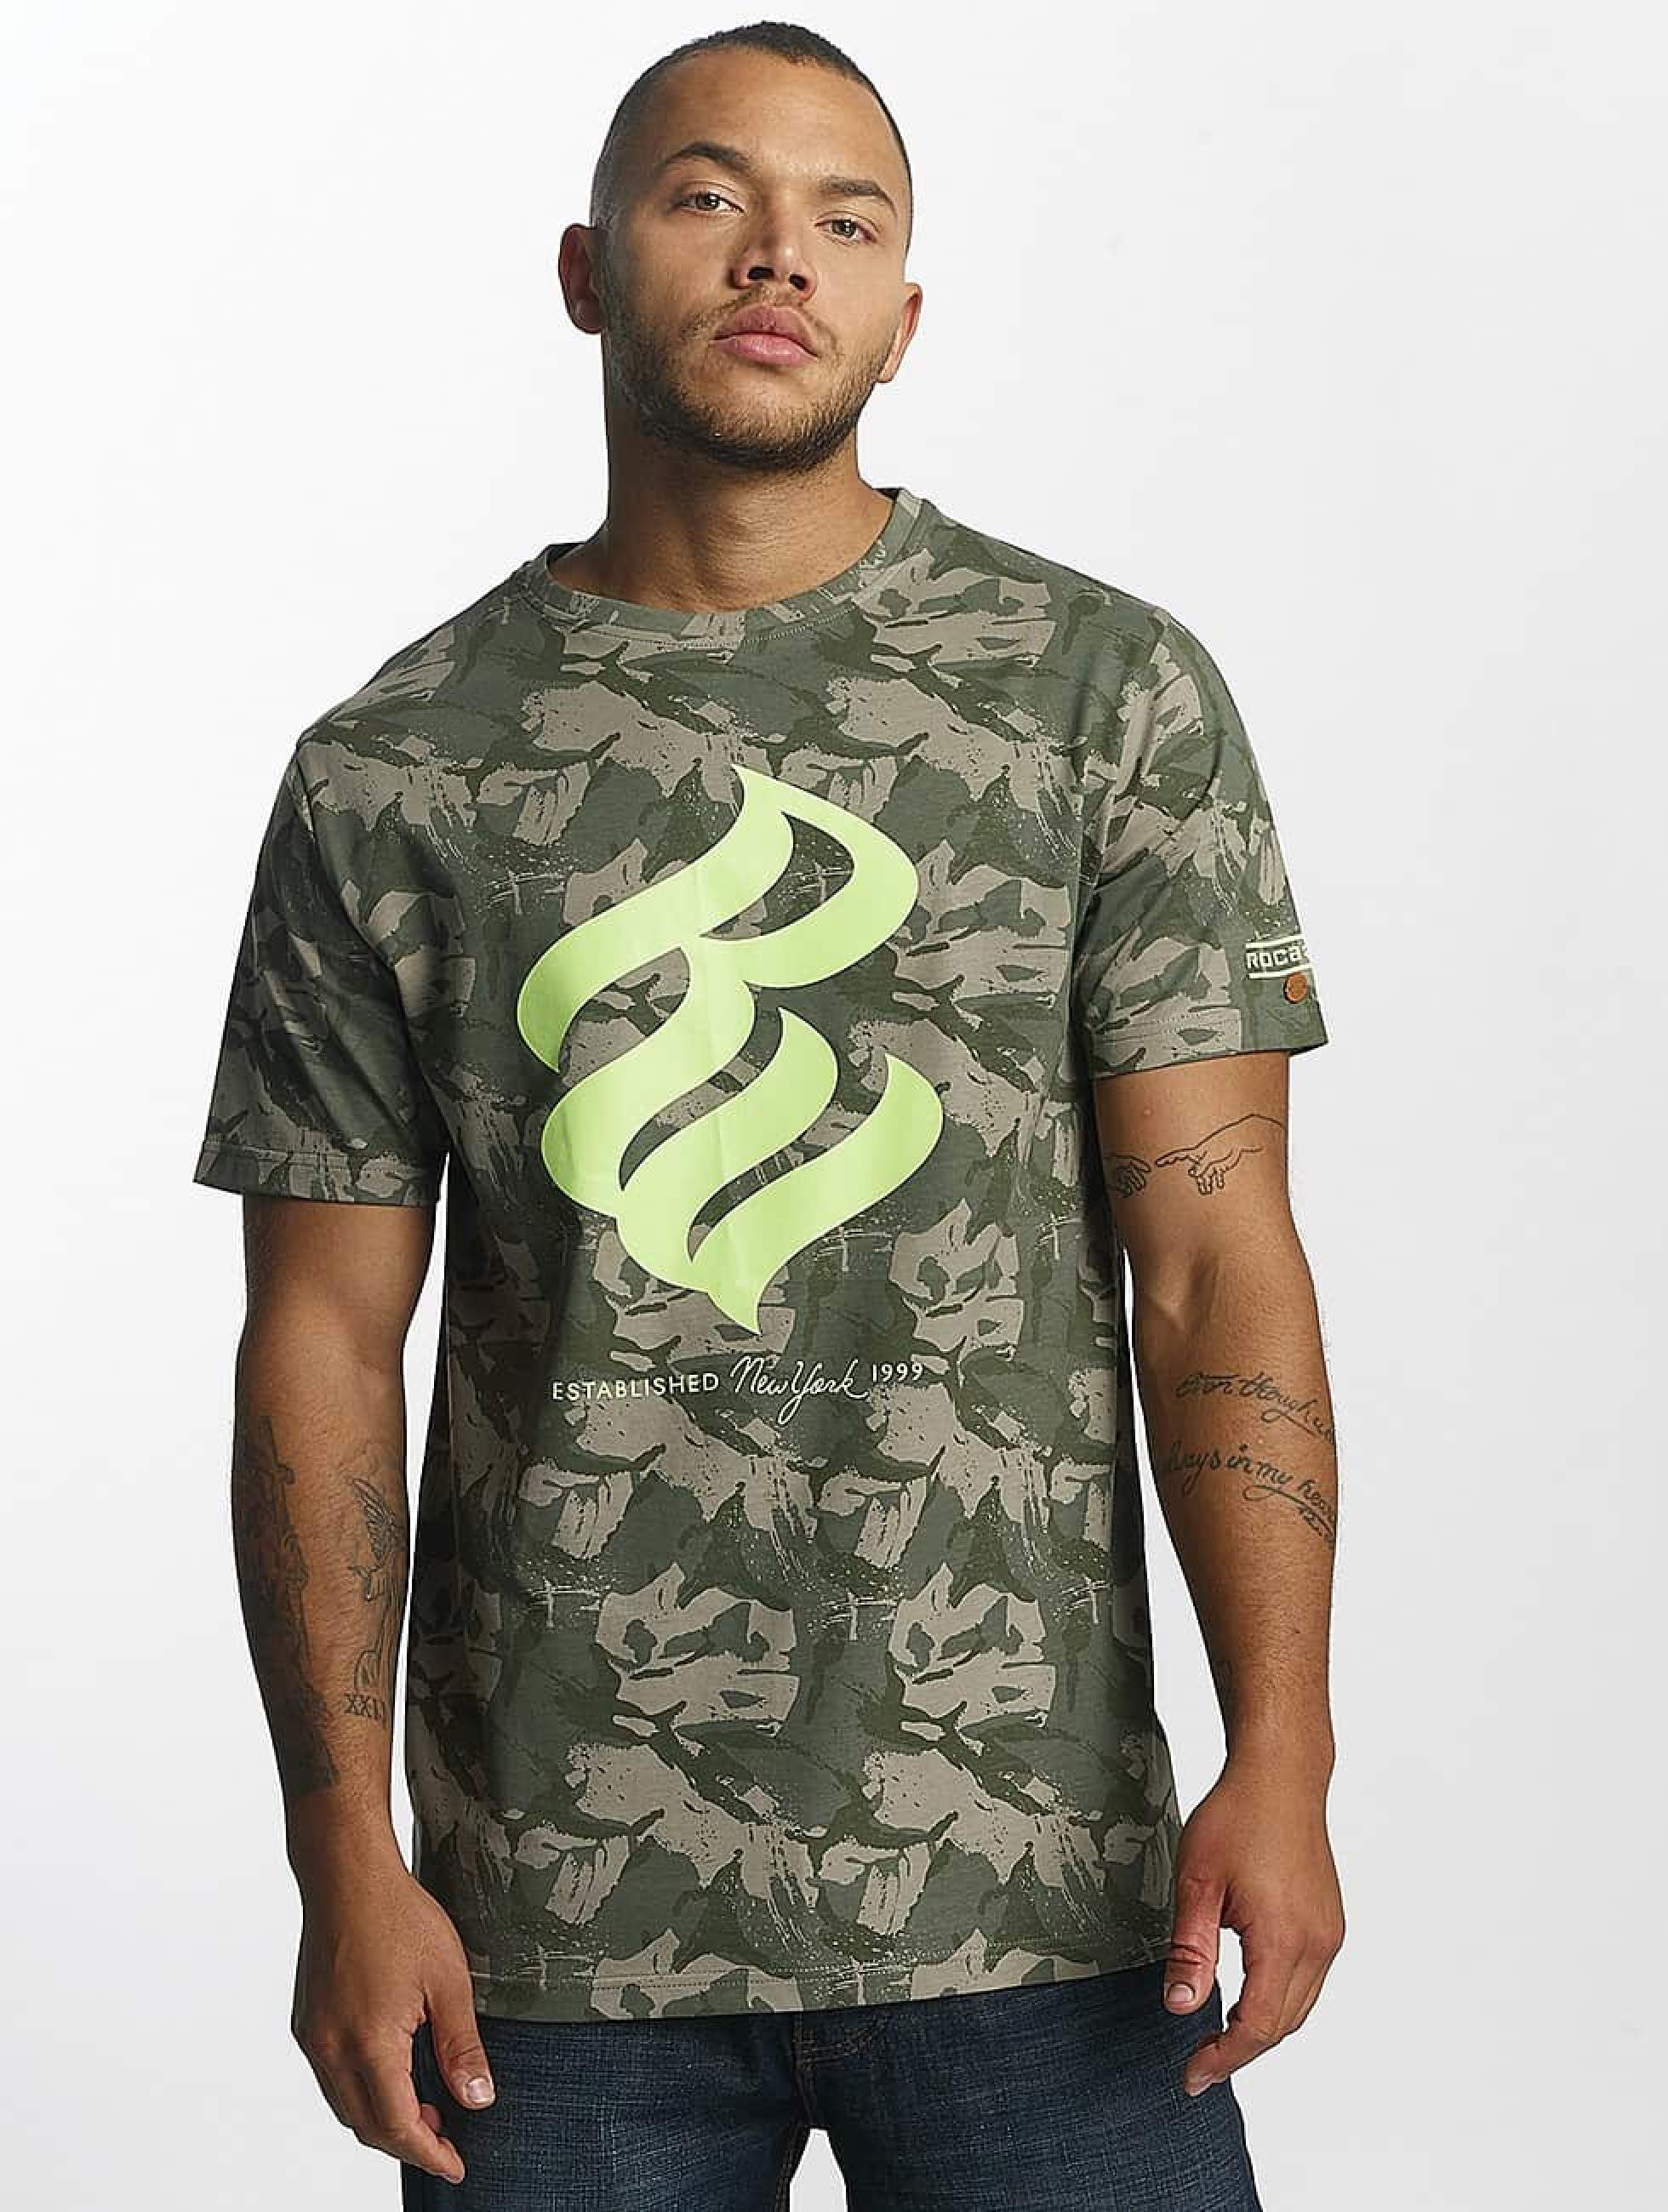 Rocawear / T-Shirt NY 1999 T in camouflage S